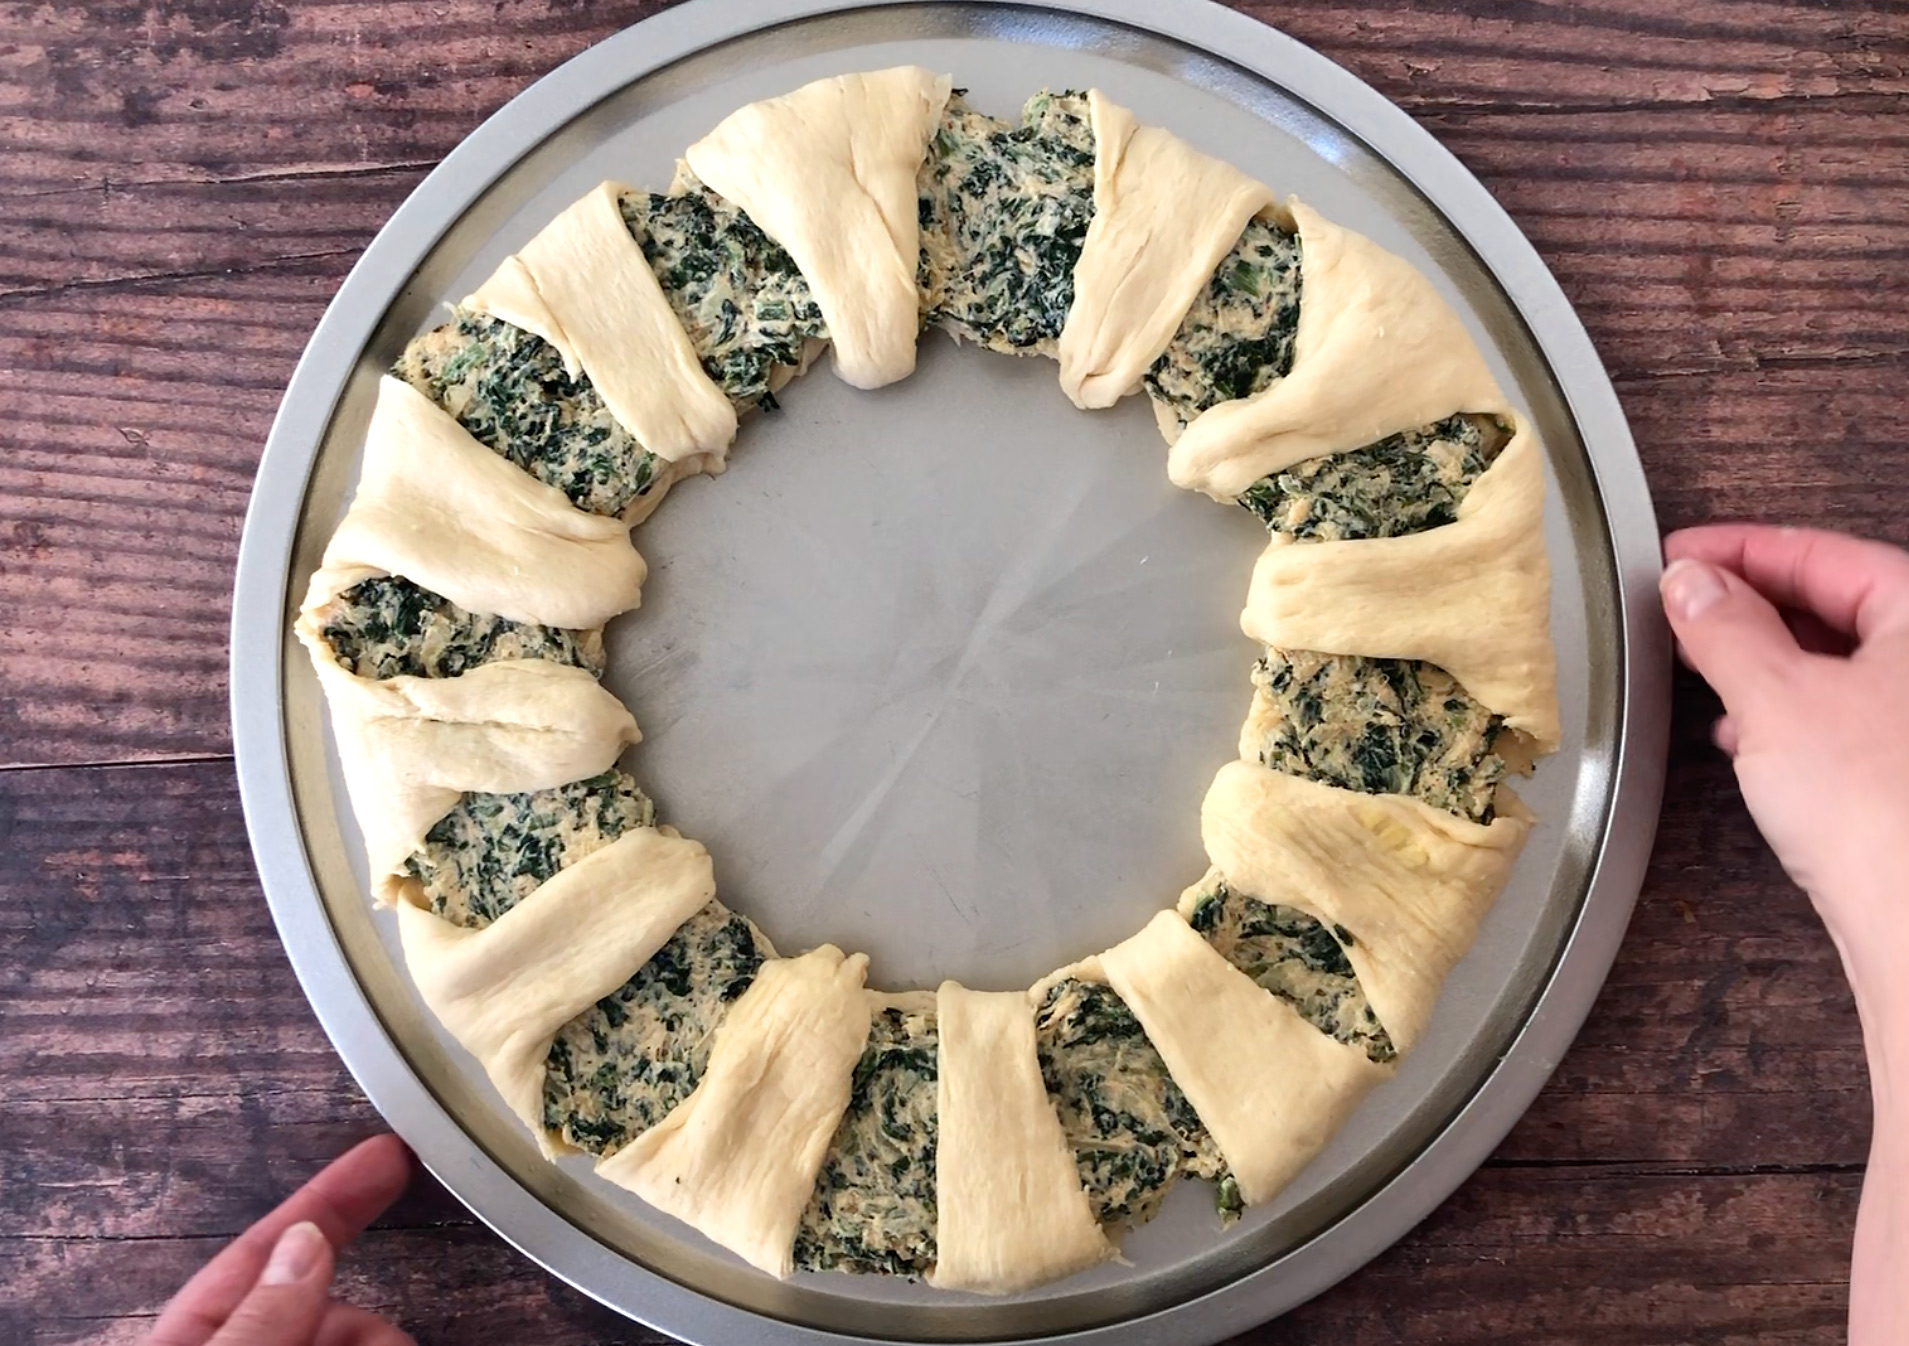 Raw crescent dough slices arranged in a wreath shape filled with spinach dip on a pizza pan